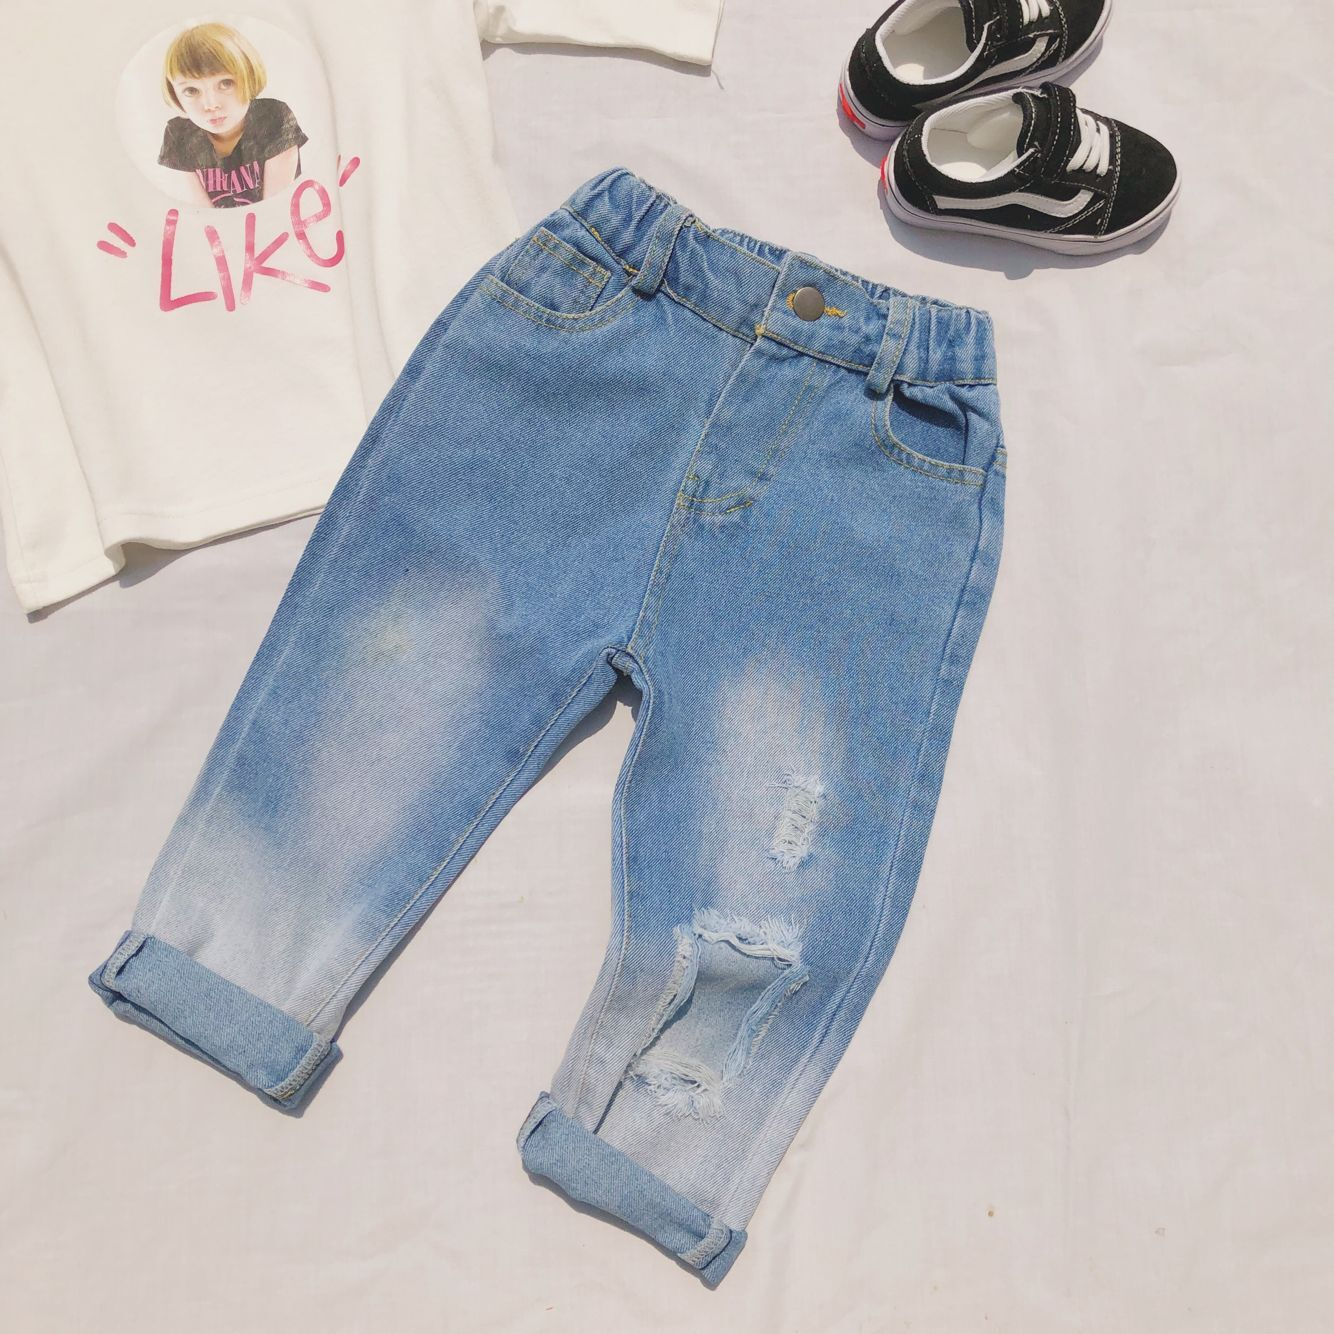 2019 Summer New Style Childrenswear Men And Women <font><b>Children</b></font> Unisex Style with Holes Jeans <font><b>BF</b></font> Style Jeans image